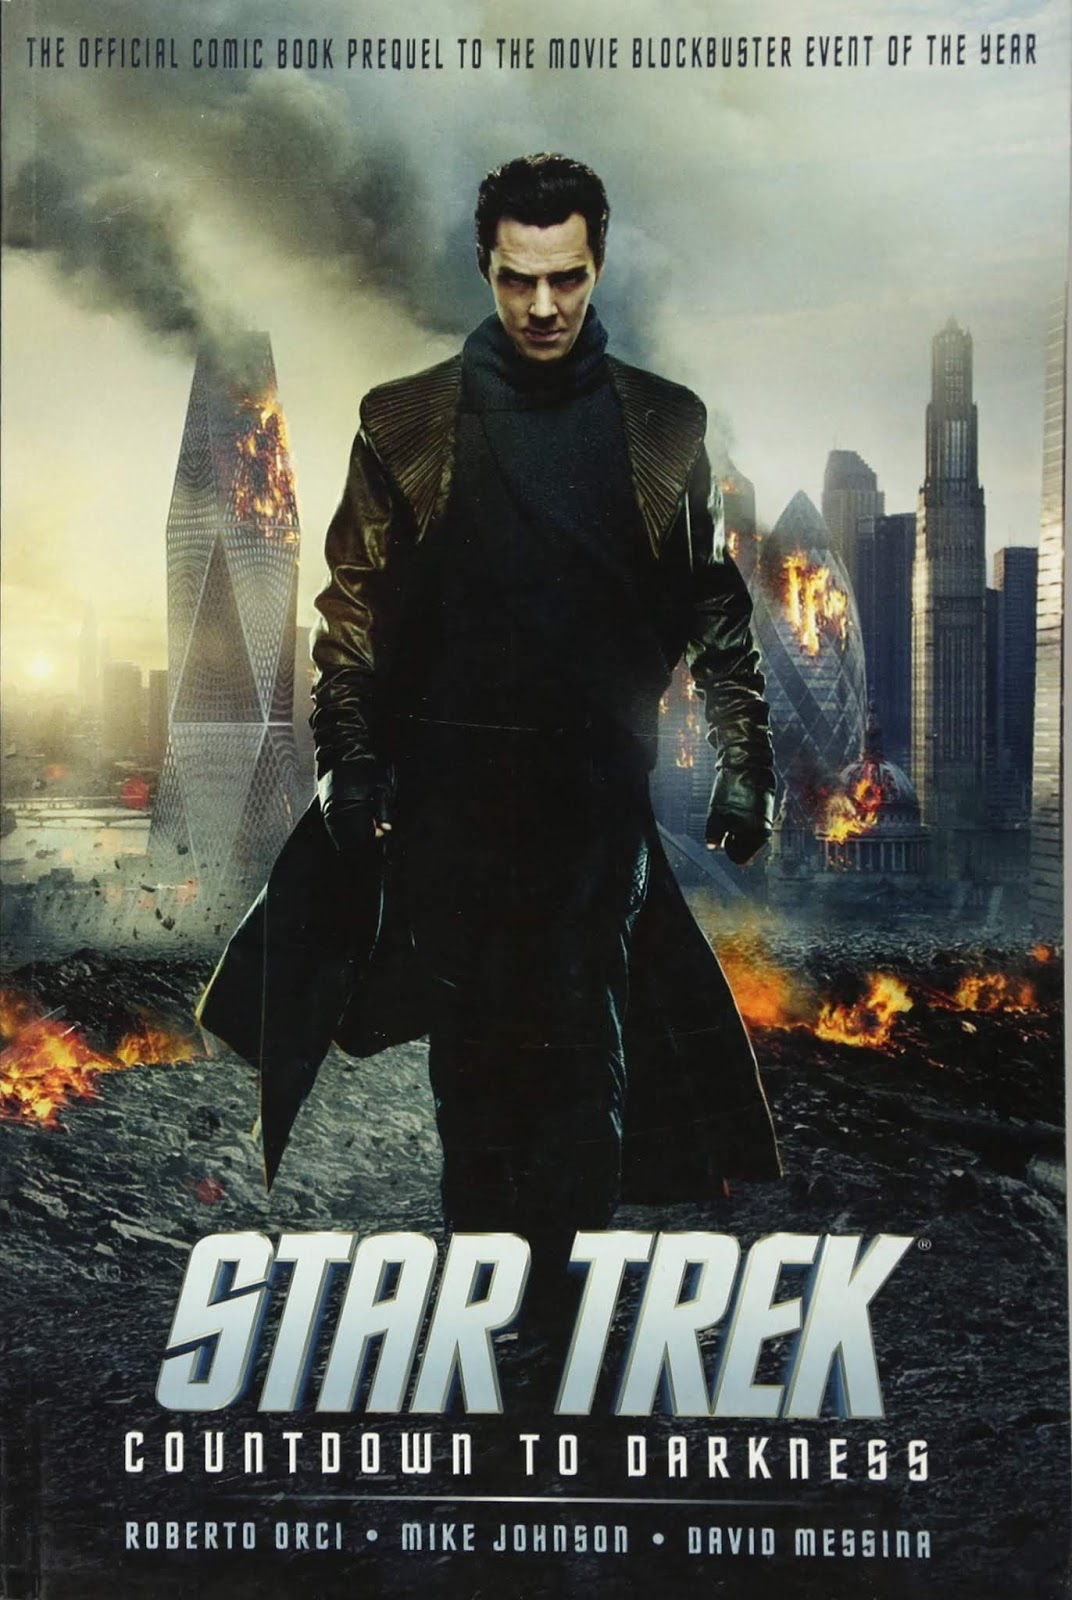 Star Trek: Countdown to Darkness by Roberto Orci, Mike Johnson and David Messina